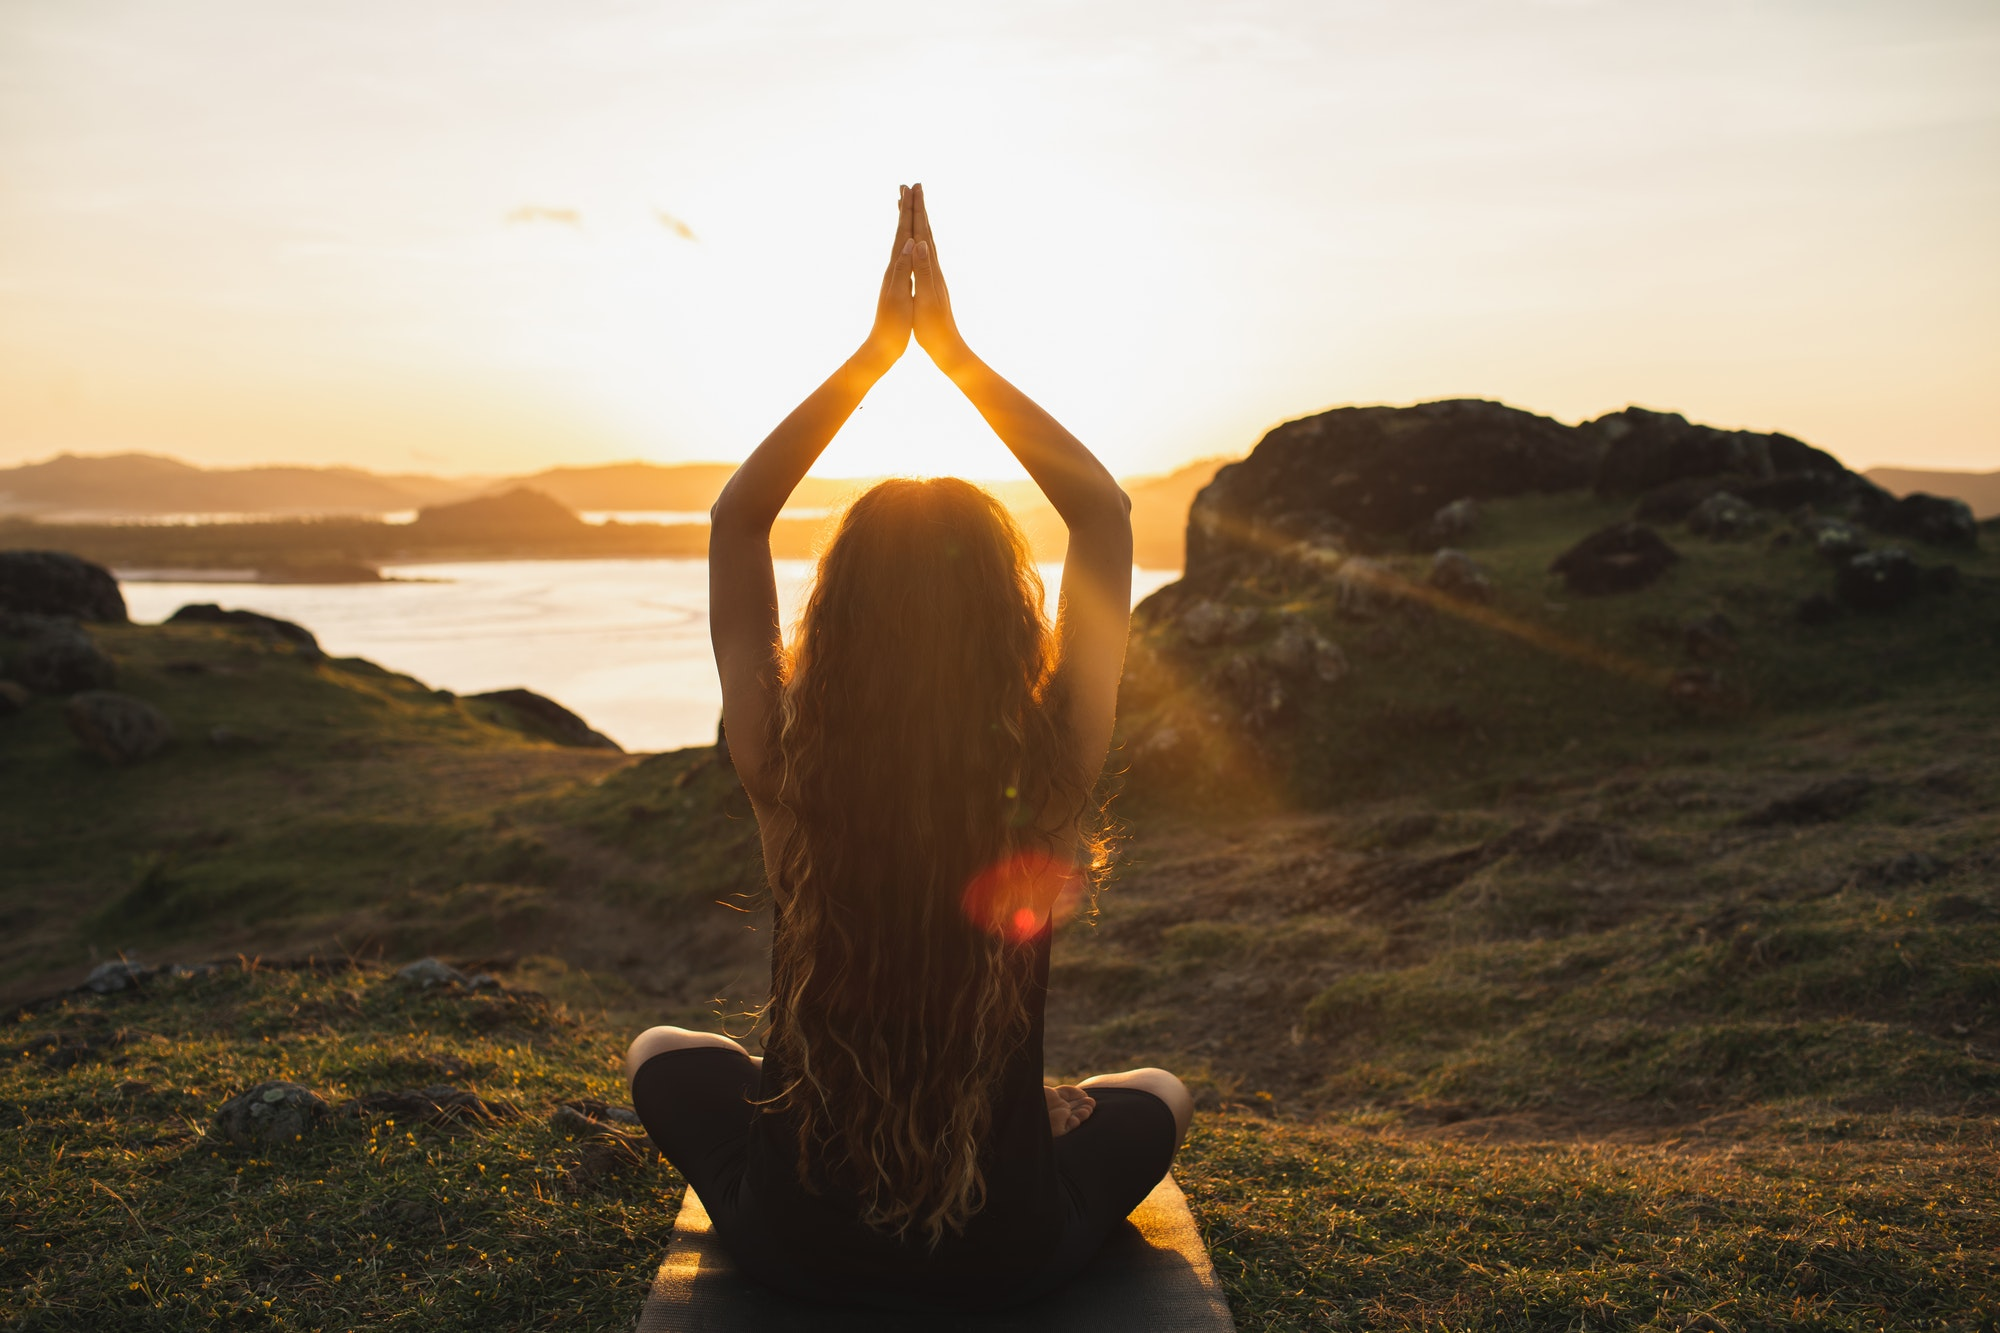 Young woman practicing yoga outdoors. Spiritual harmony, introspection and well-being concept